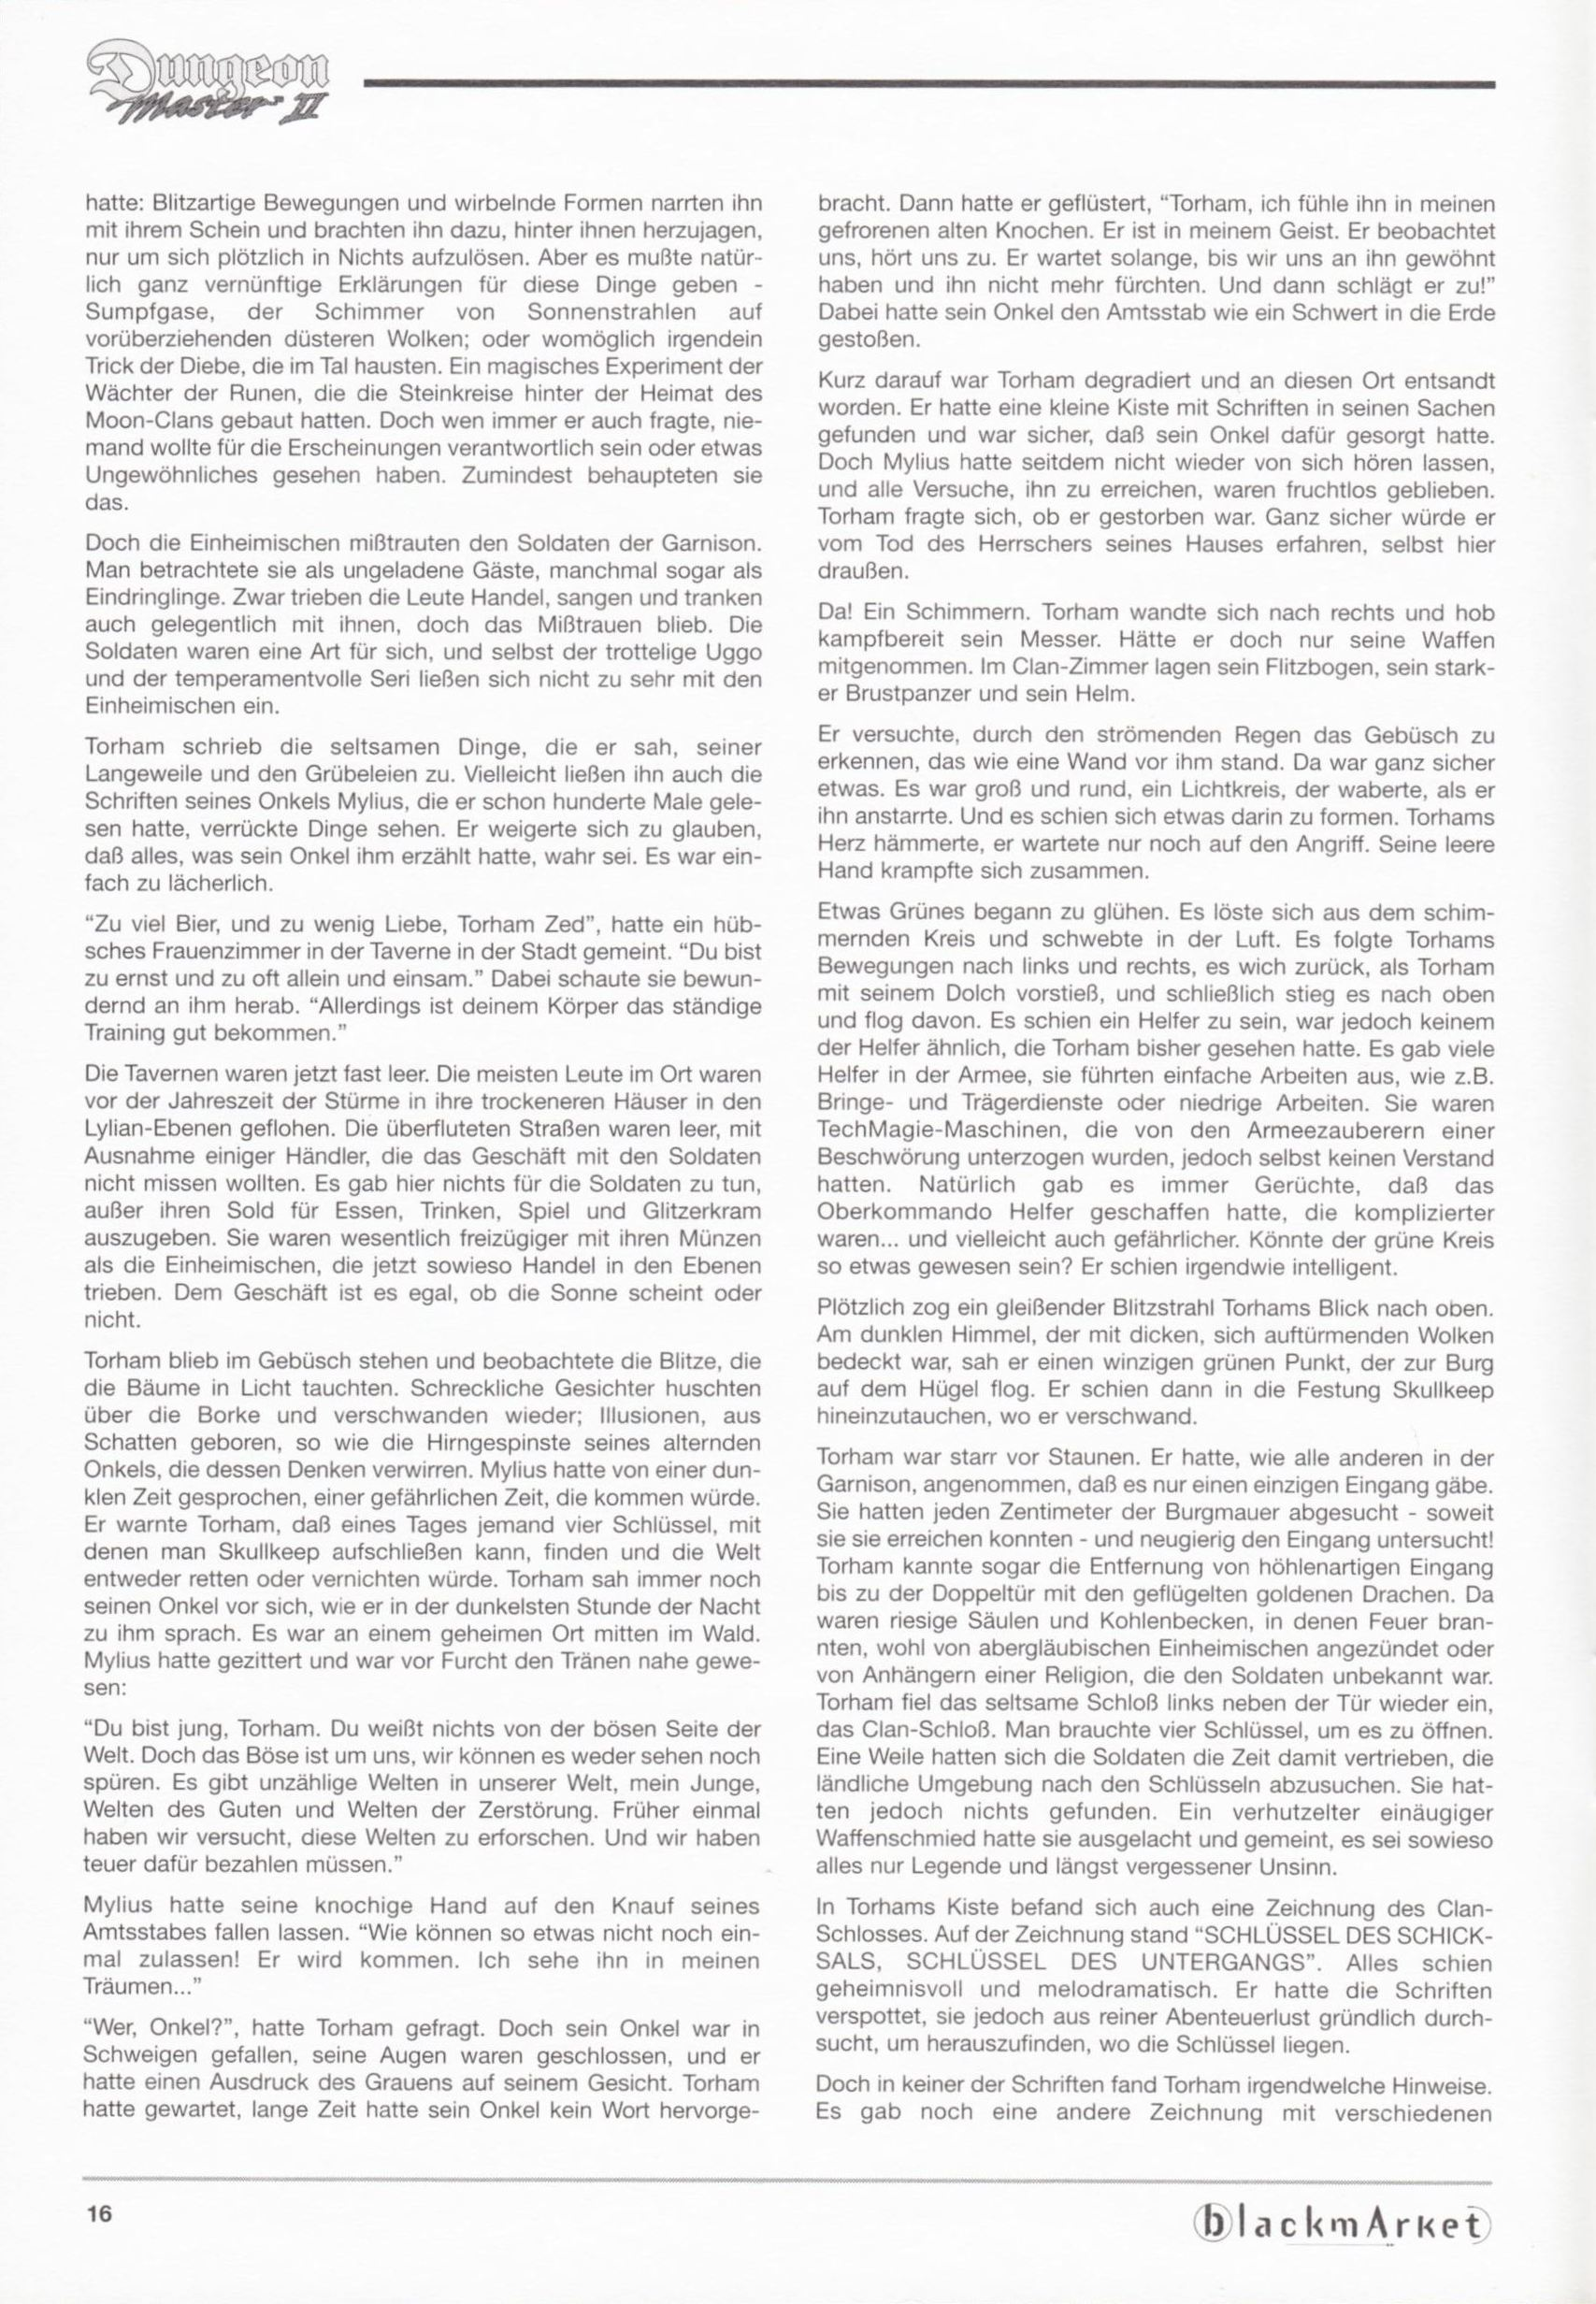 Game - Dungeon Master II - DE - PC - Blackmarket With Manual - Manual - Page 018 - Scan